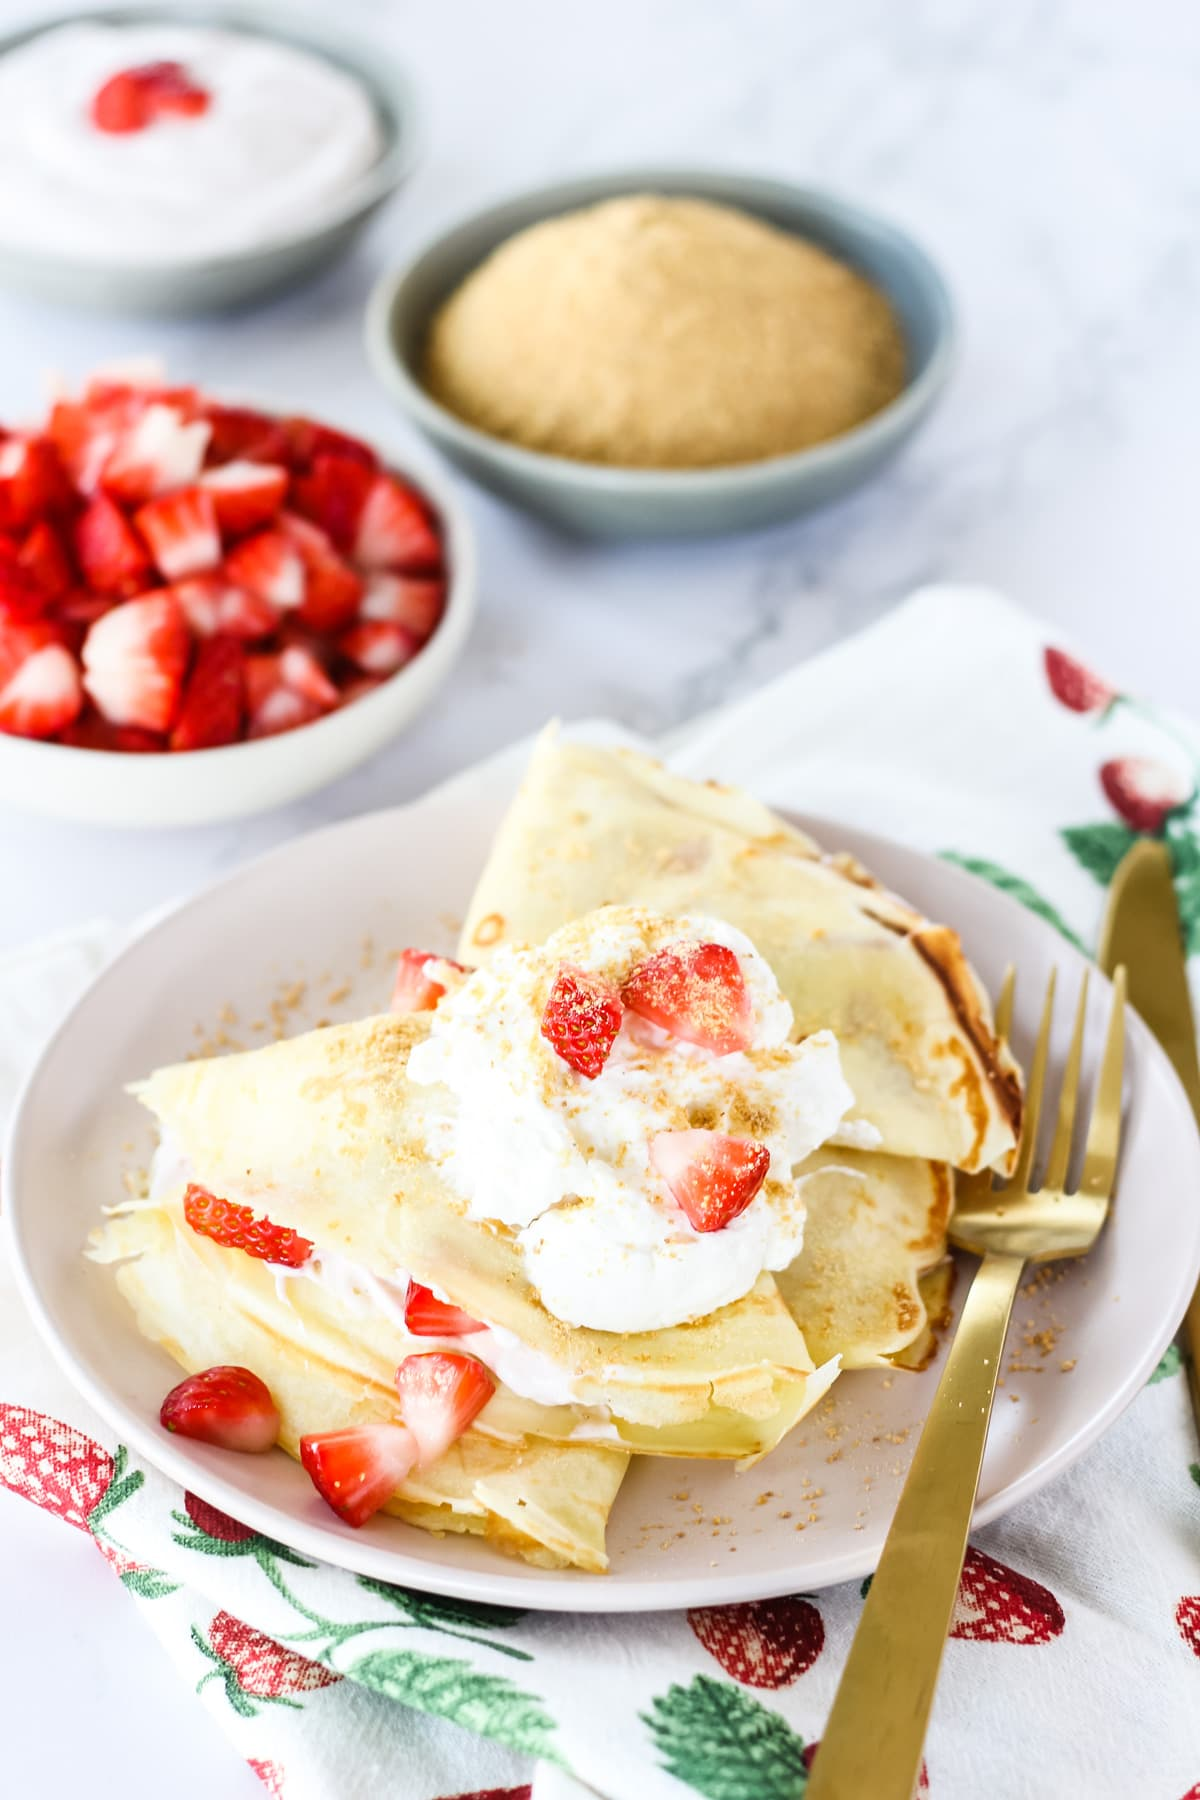 a top down view of a plate of two Strawberry Cheesecake Crepes garnished with whipping cream, chopped strawberries and graham cracker crumbs. in the background are small bowls of chopped strawberries, graham cracker crumbs, whipping cream and a strawberry linen napkin